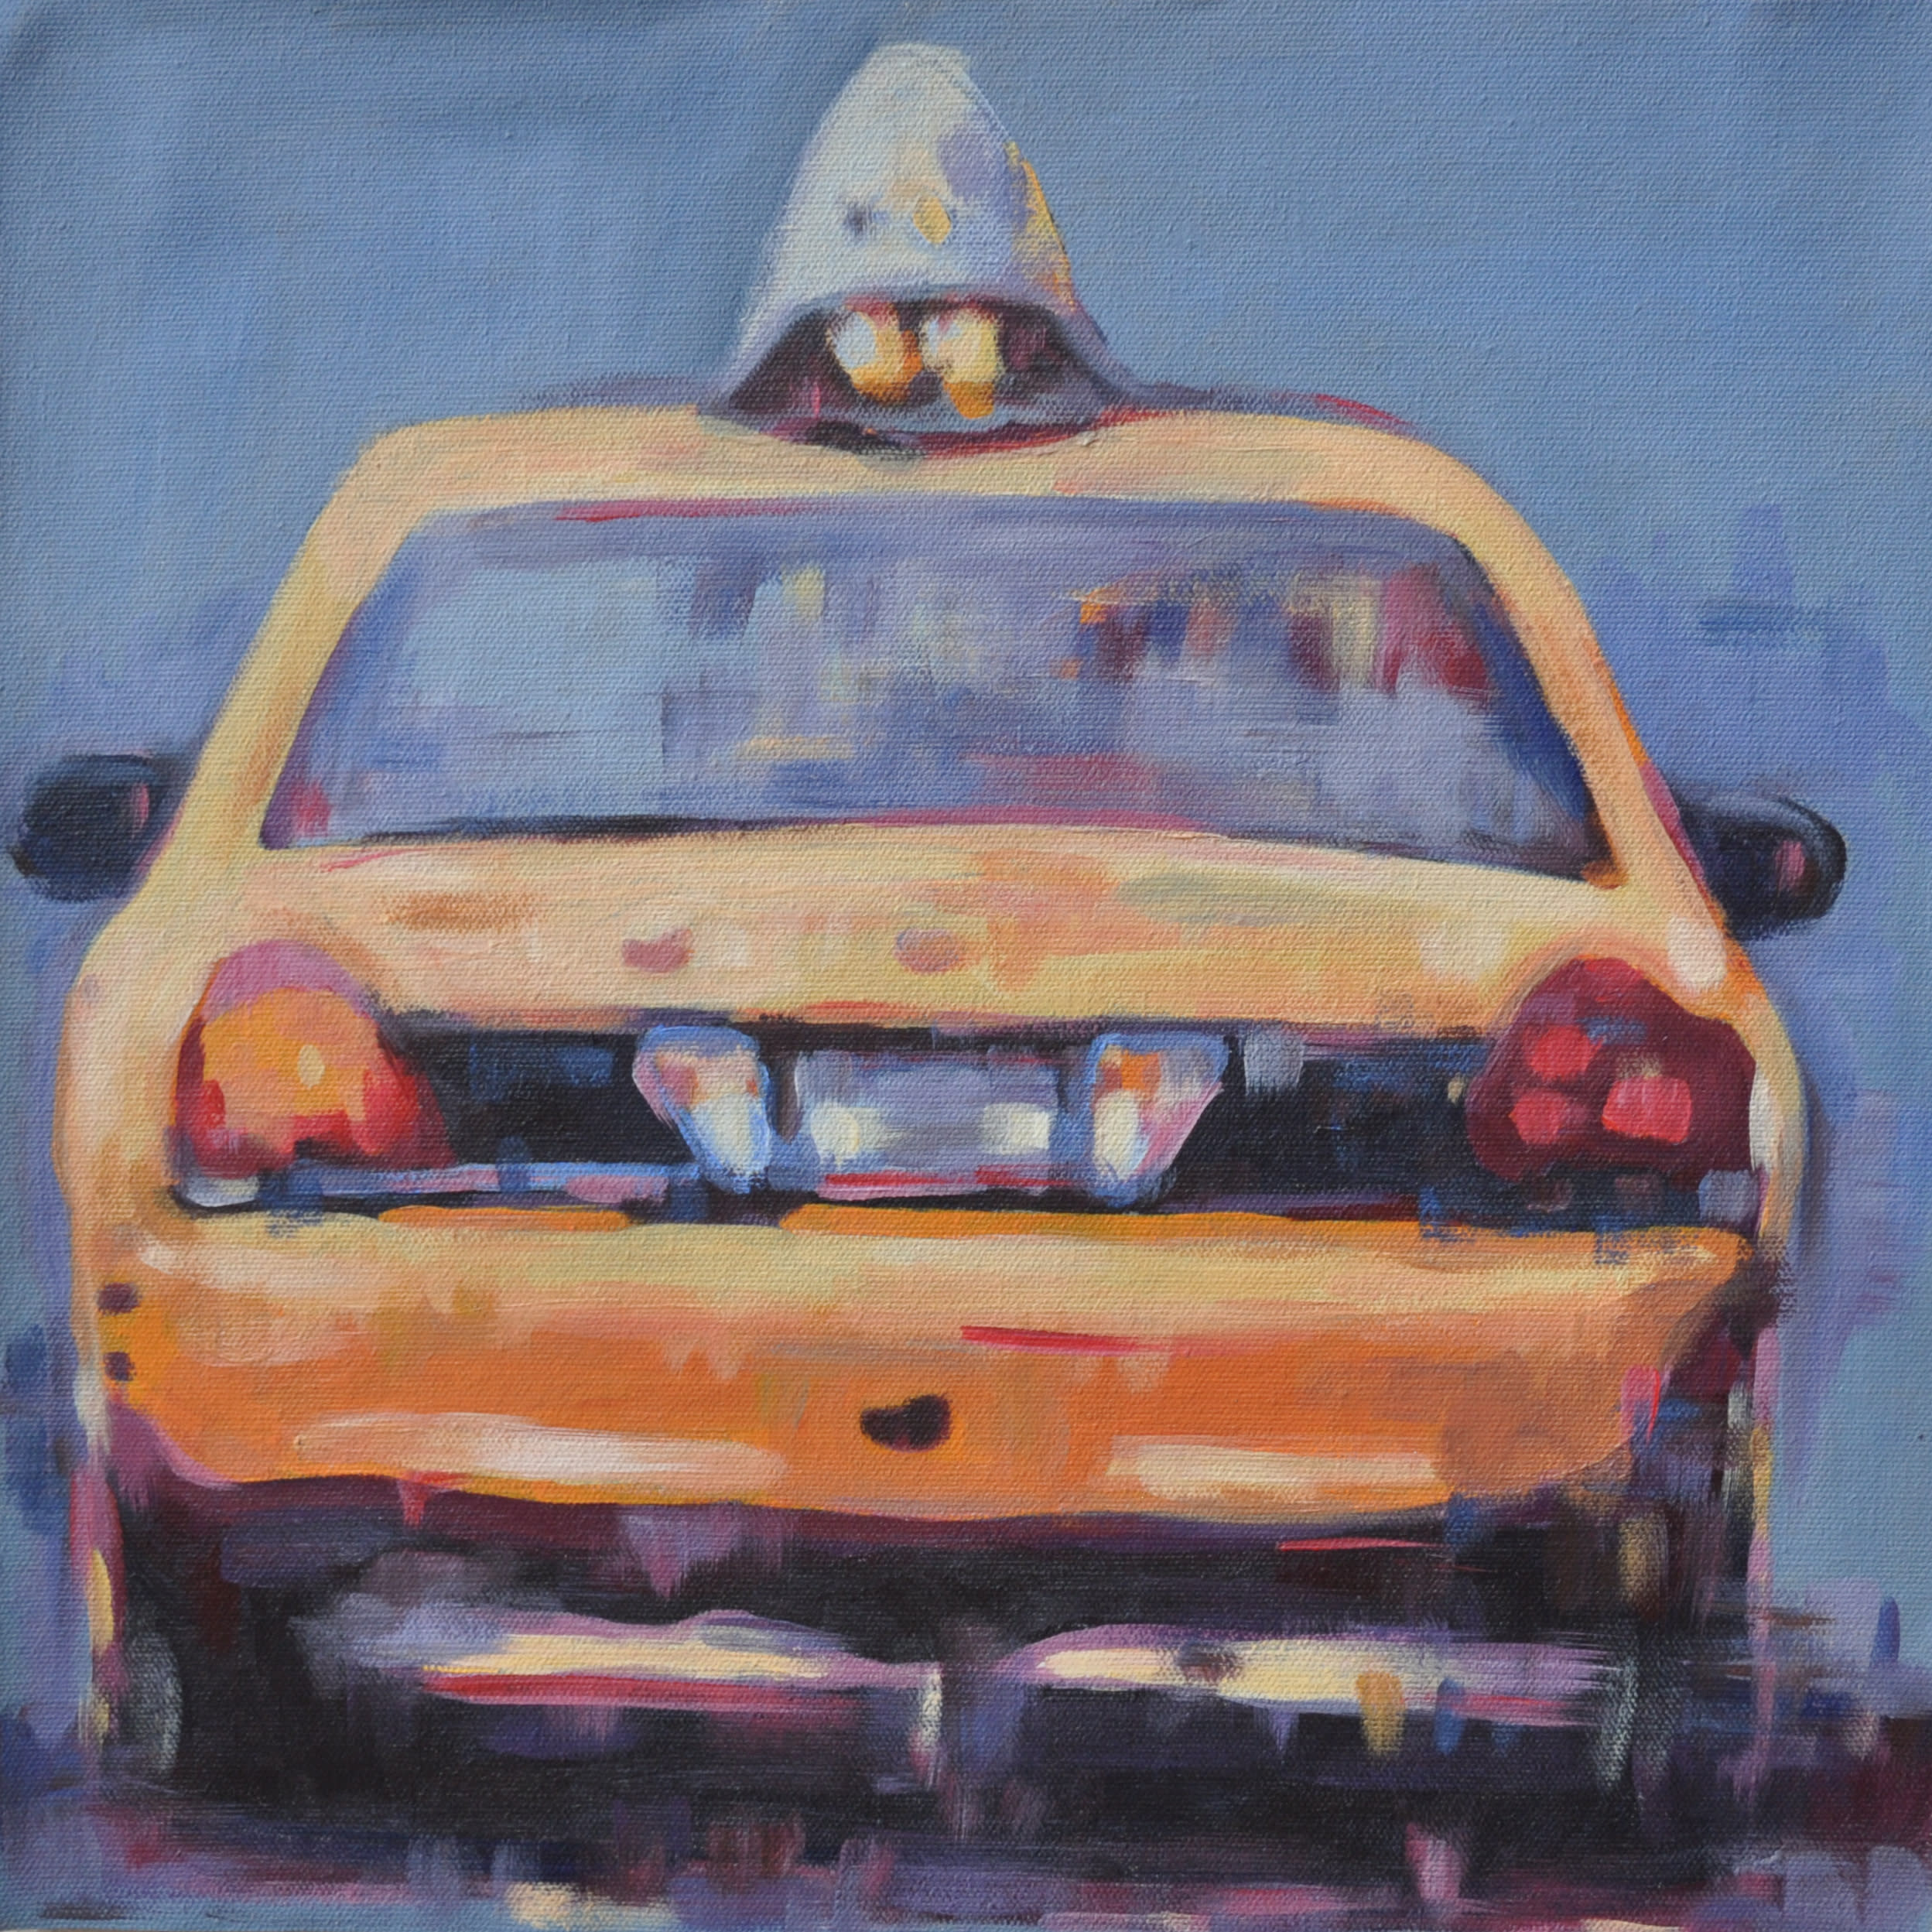 36x36 yellow taxi cab from behind by steph fonteyn wp279k